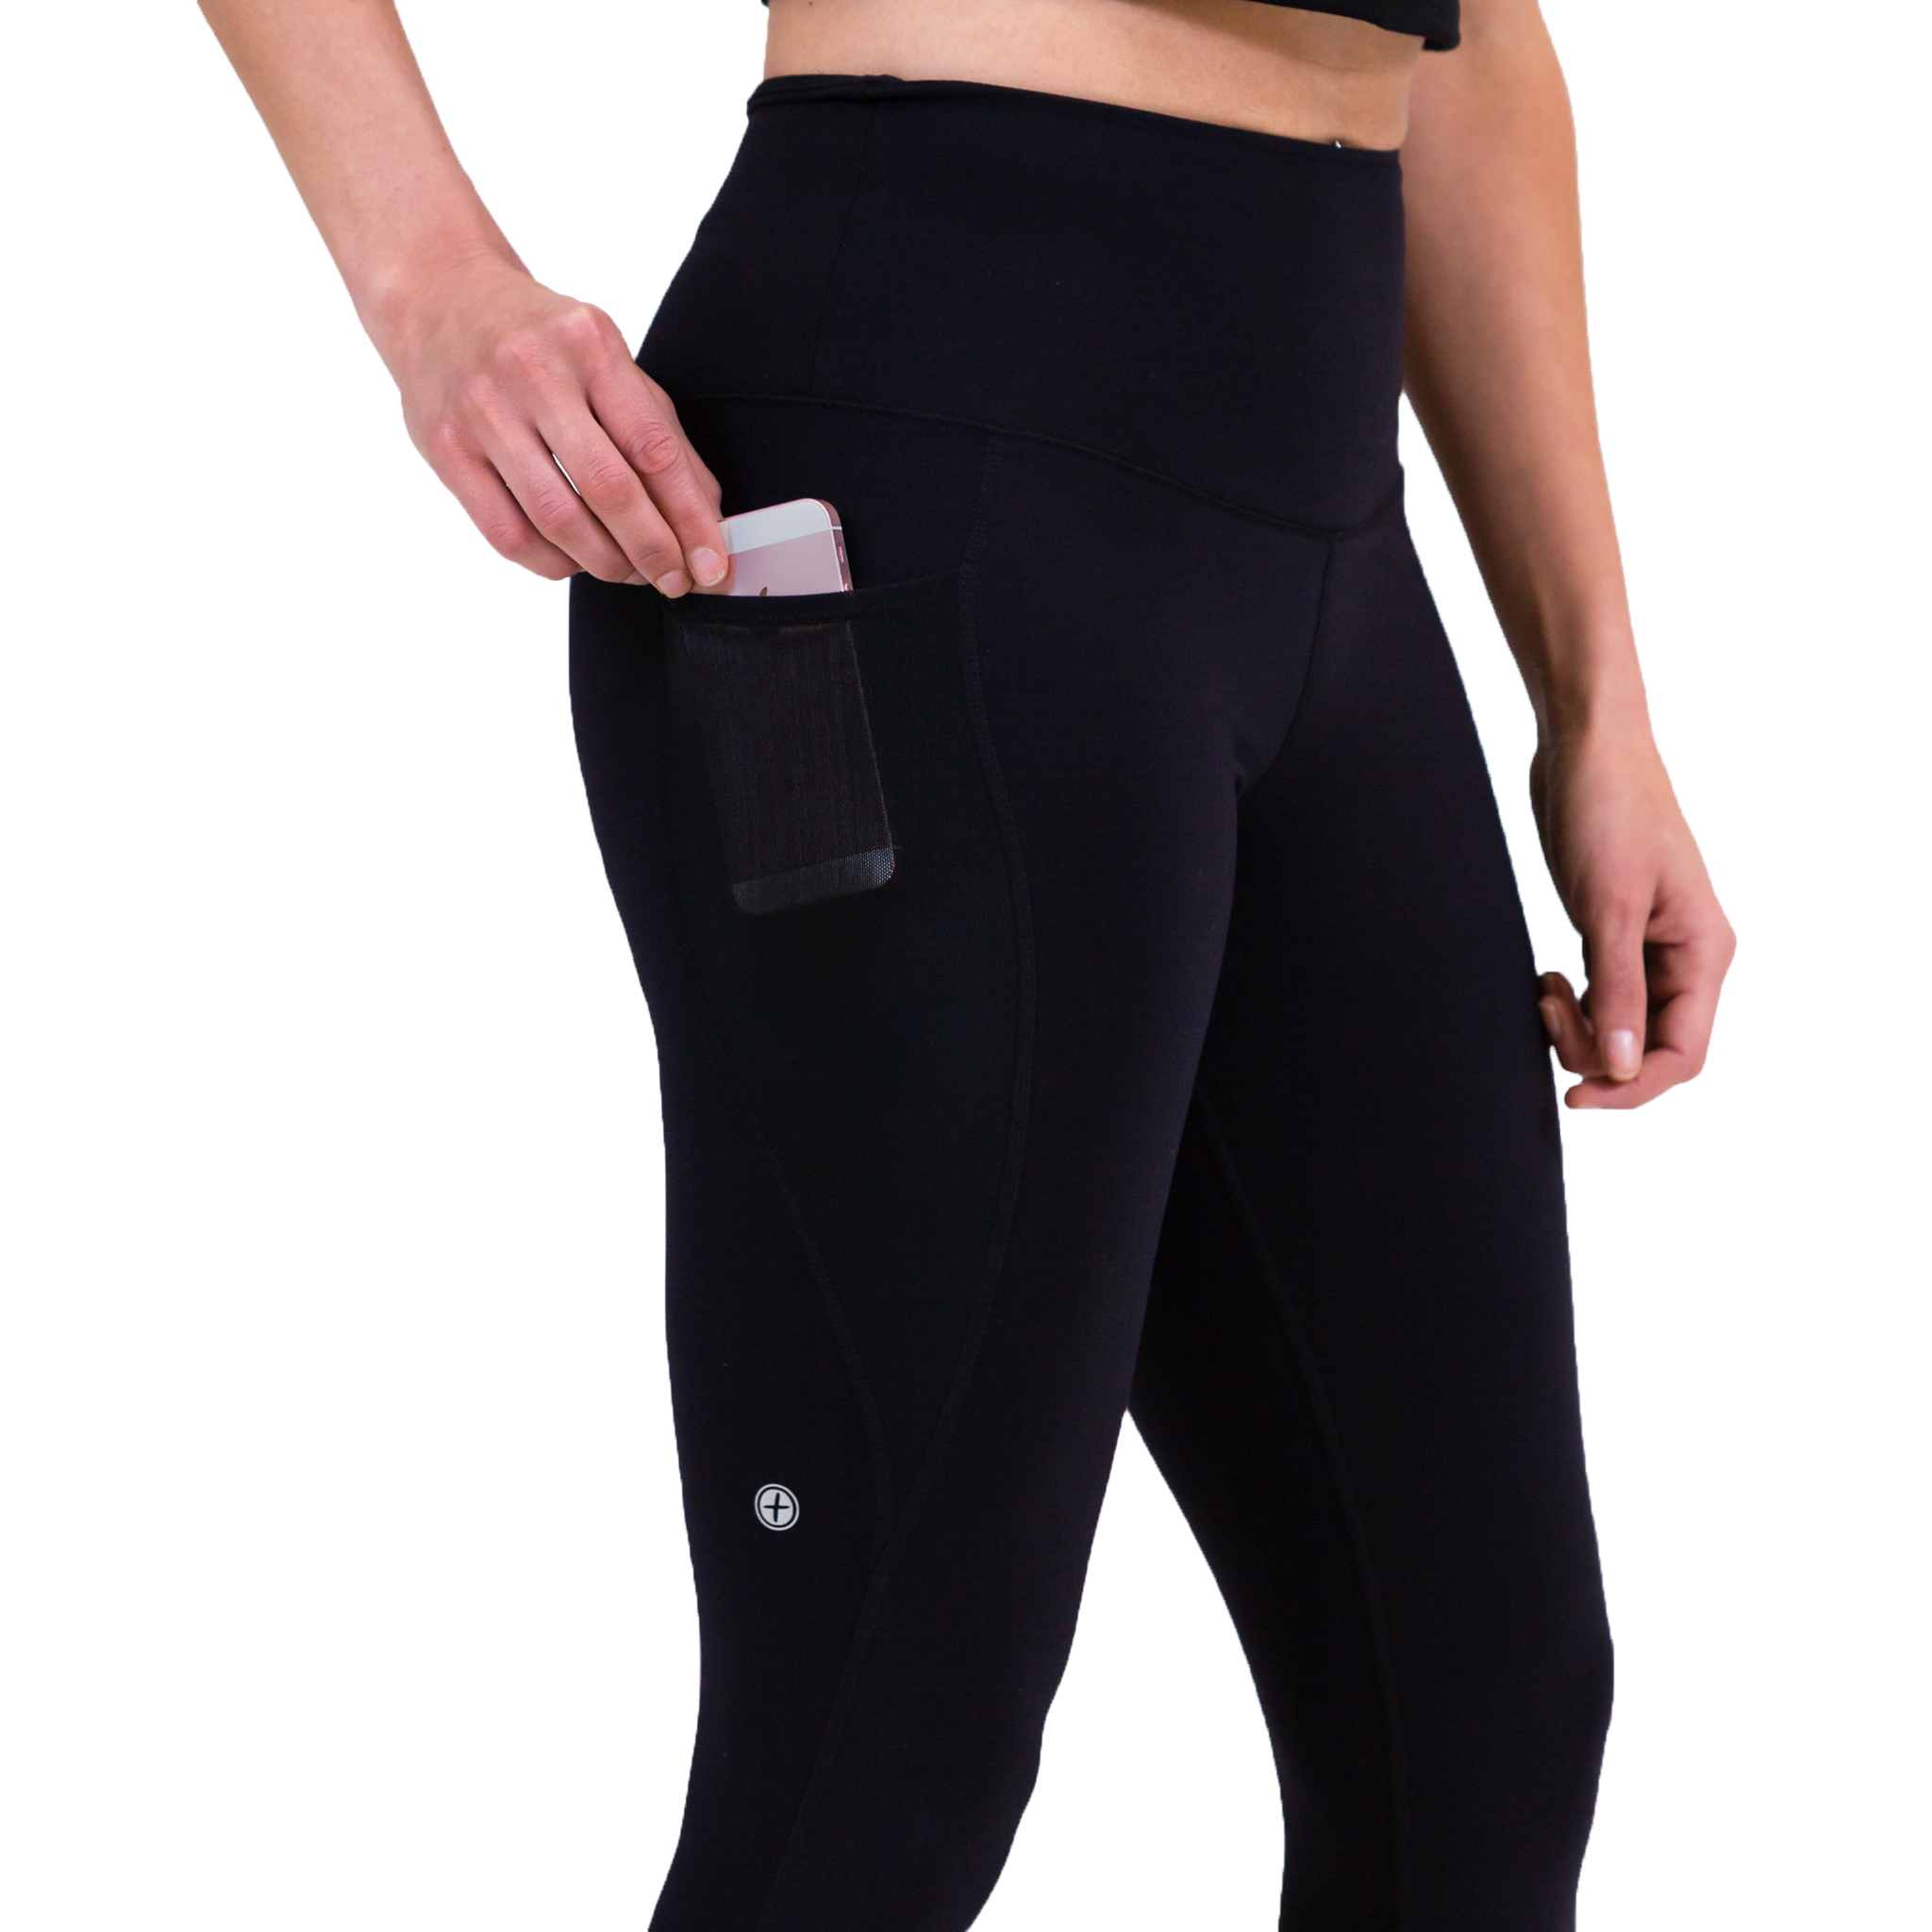 Gym+Coffee All-In Breathe 7 8 length Leggings with Pocket